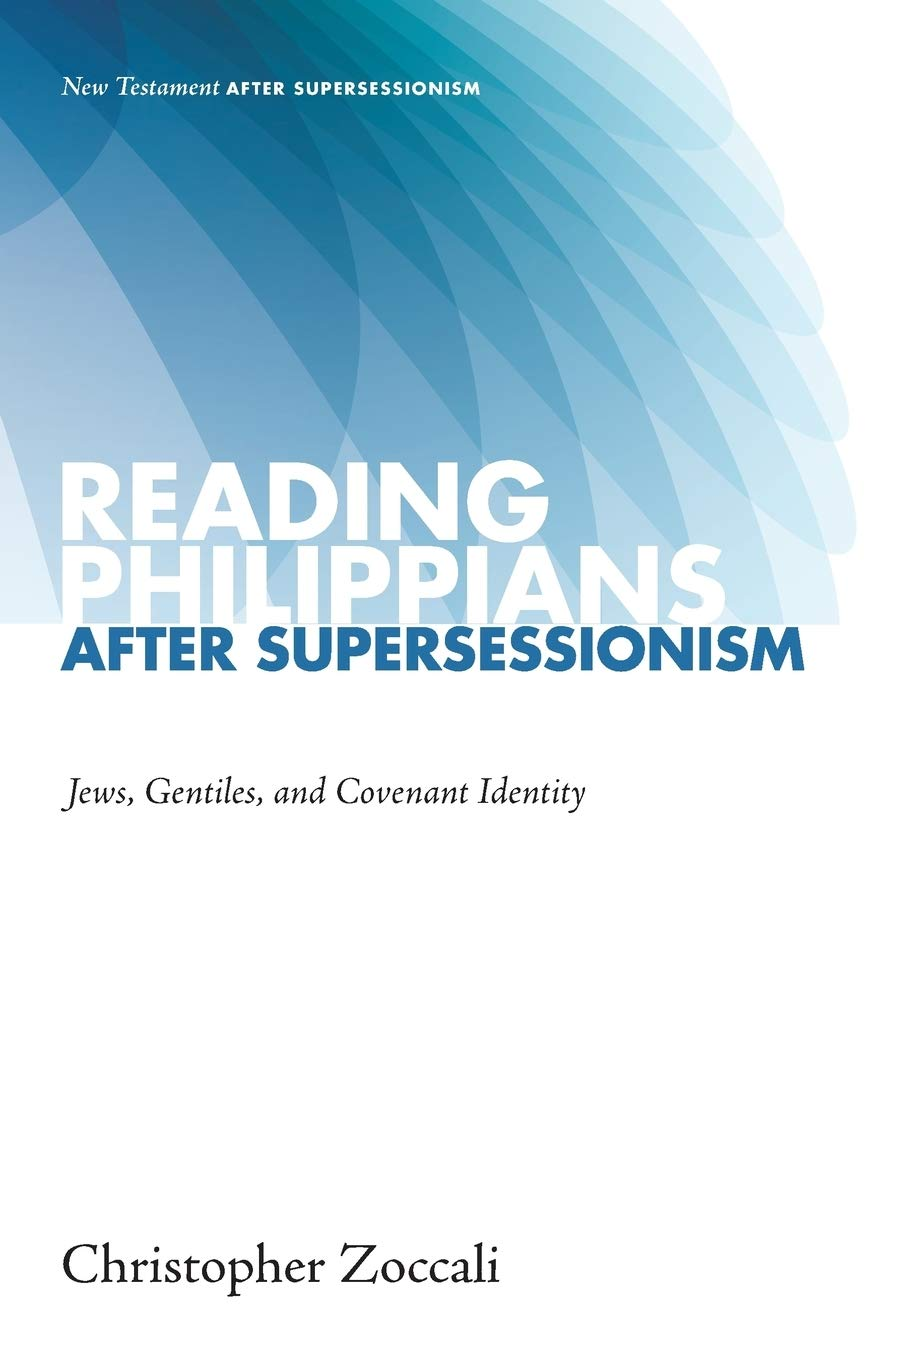 Reading Philippians after Supersessionism: Jews Gentiles and Covenant Identity (New Testament After Supersessionism)